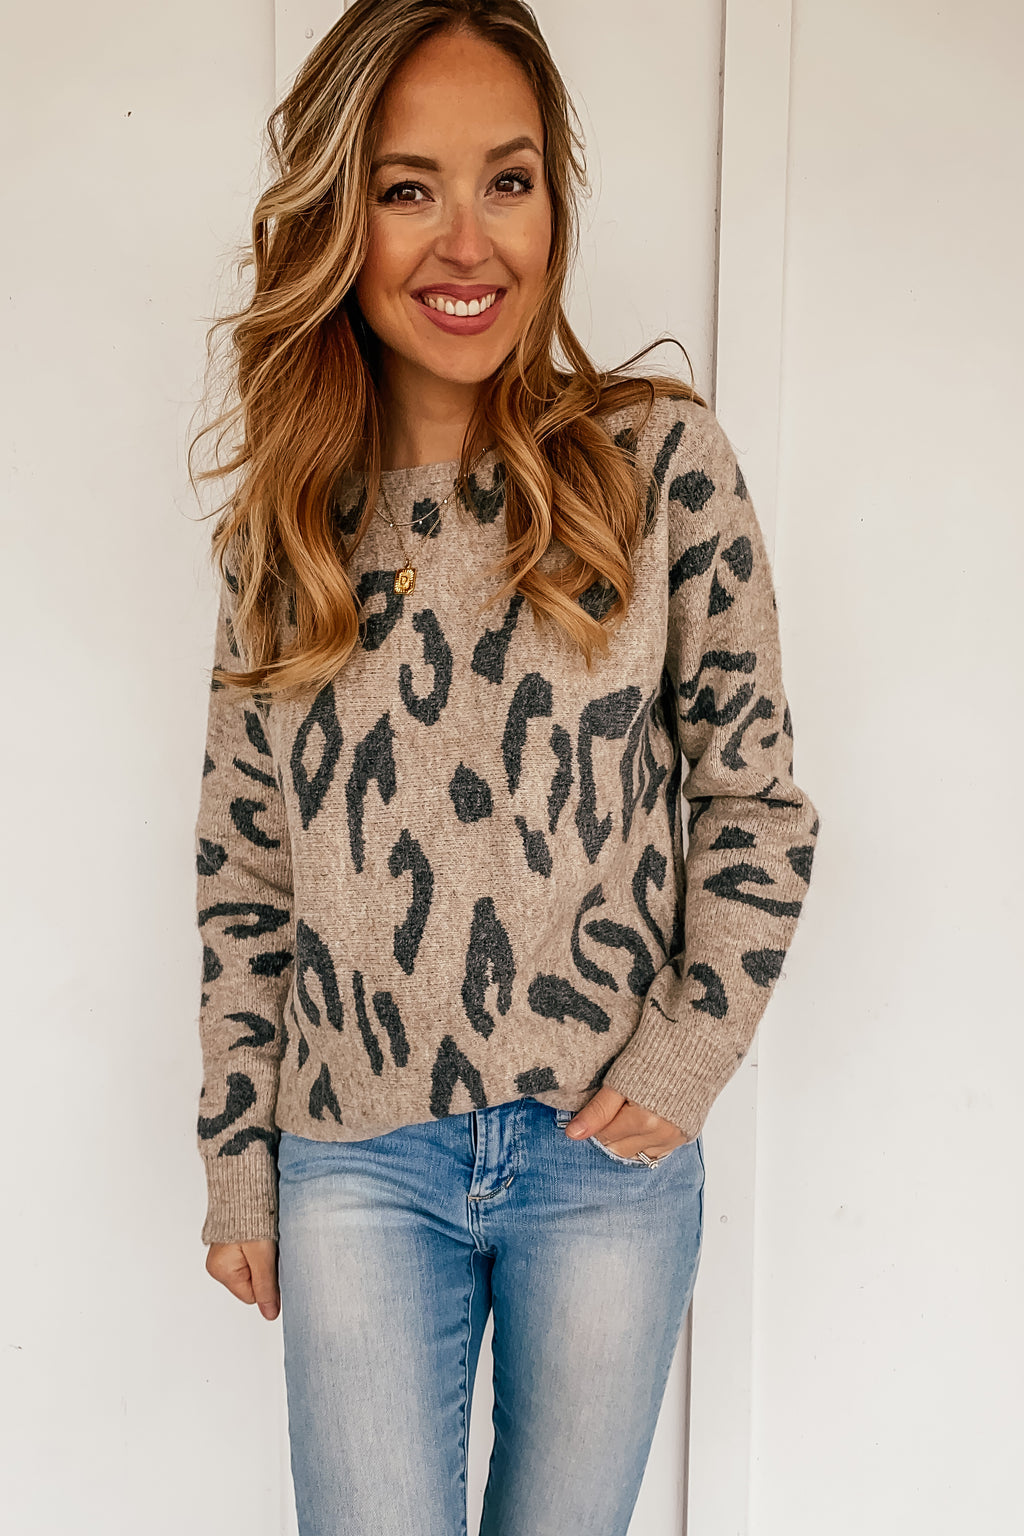 The Jordyn Leopard Sweater